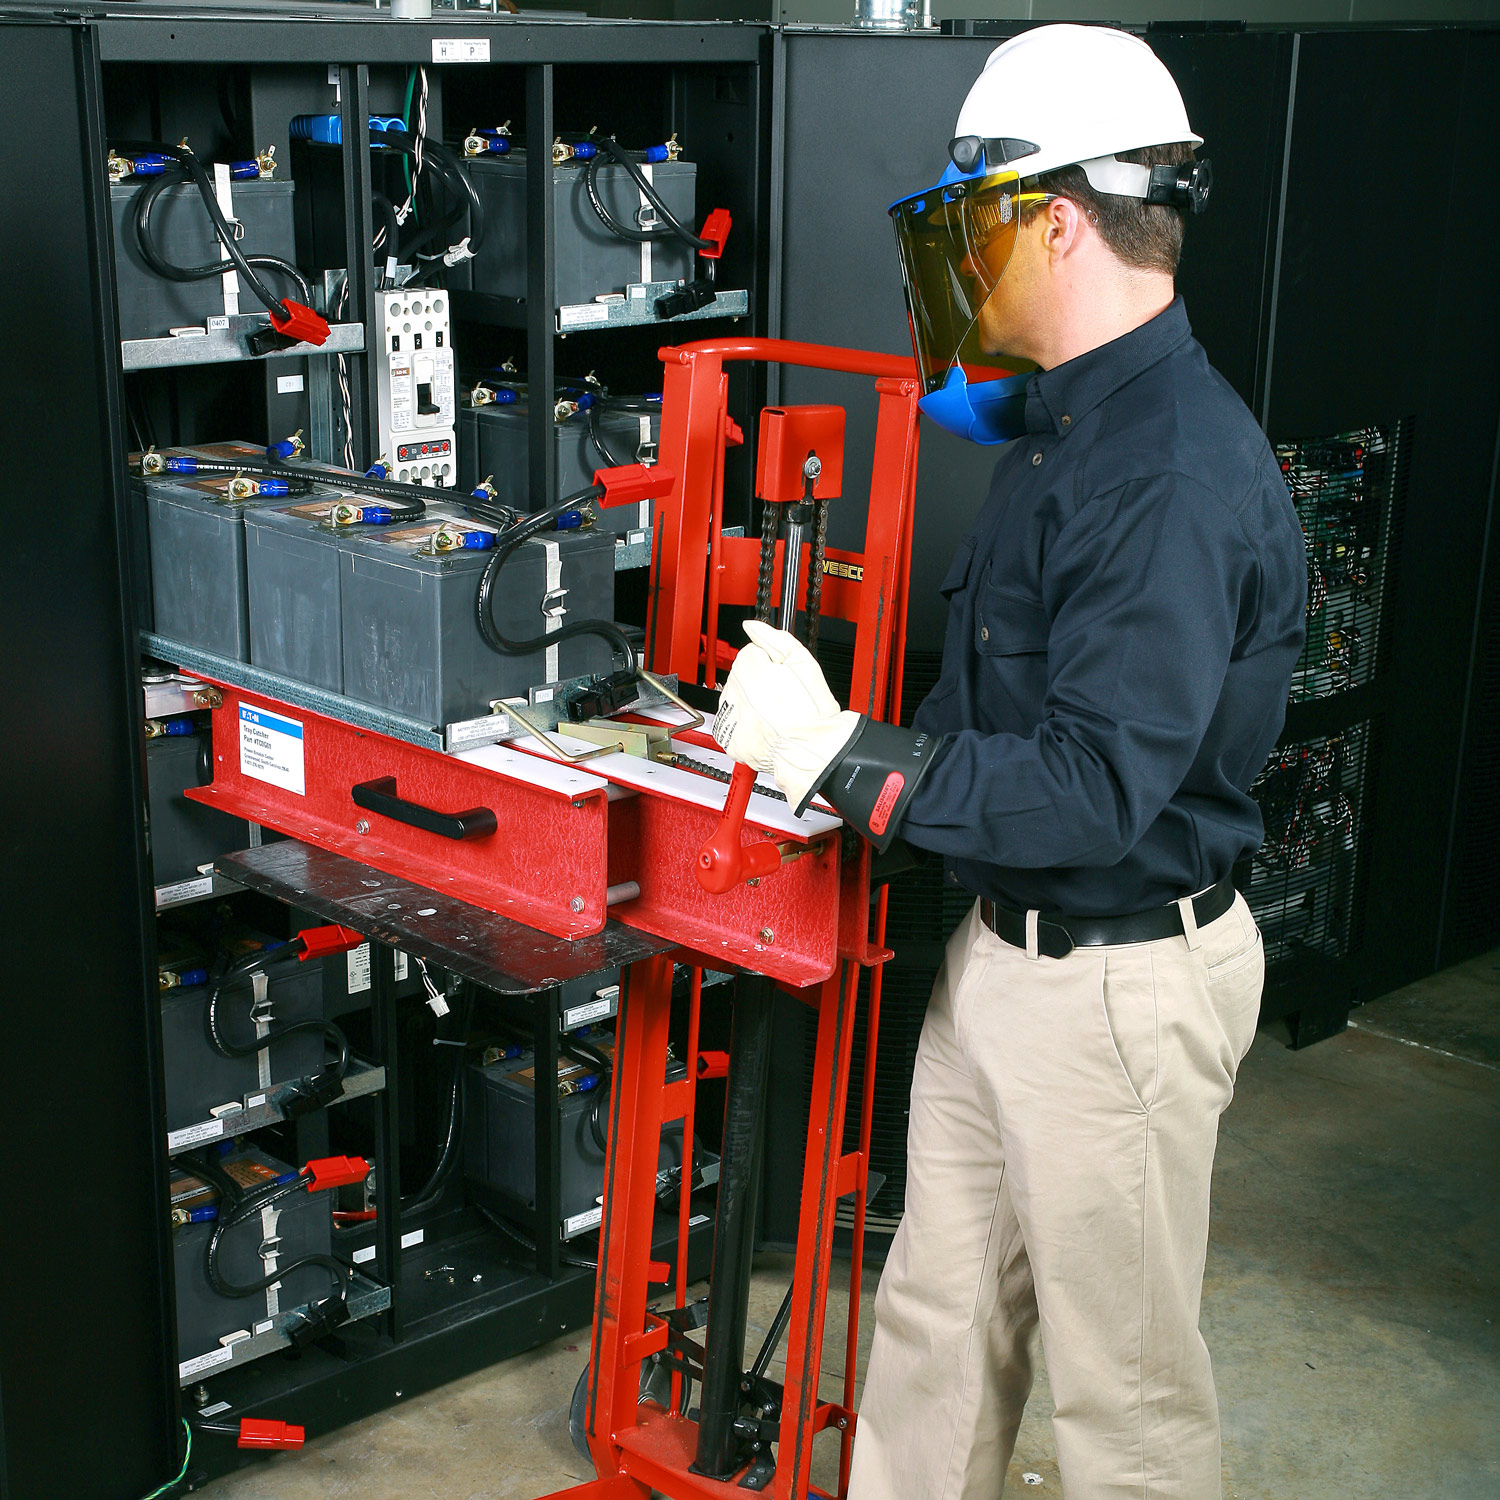 Integrated System Testing, Load Bank, Infrared Testing and